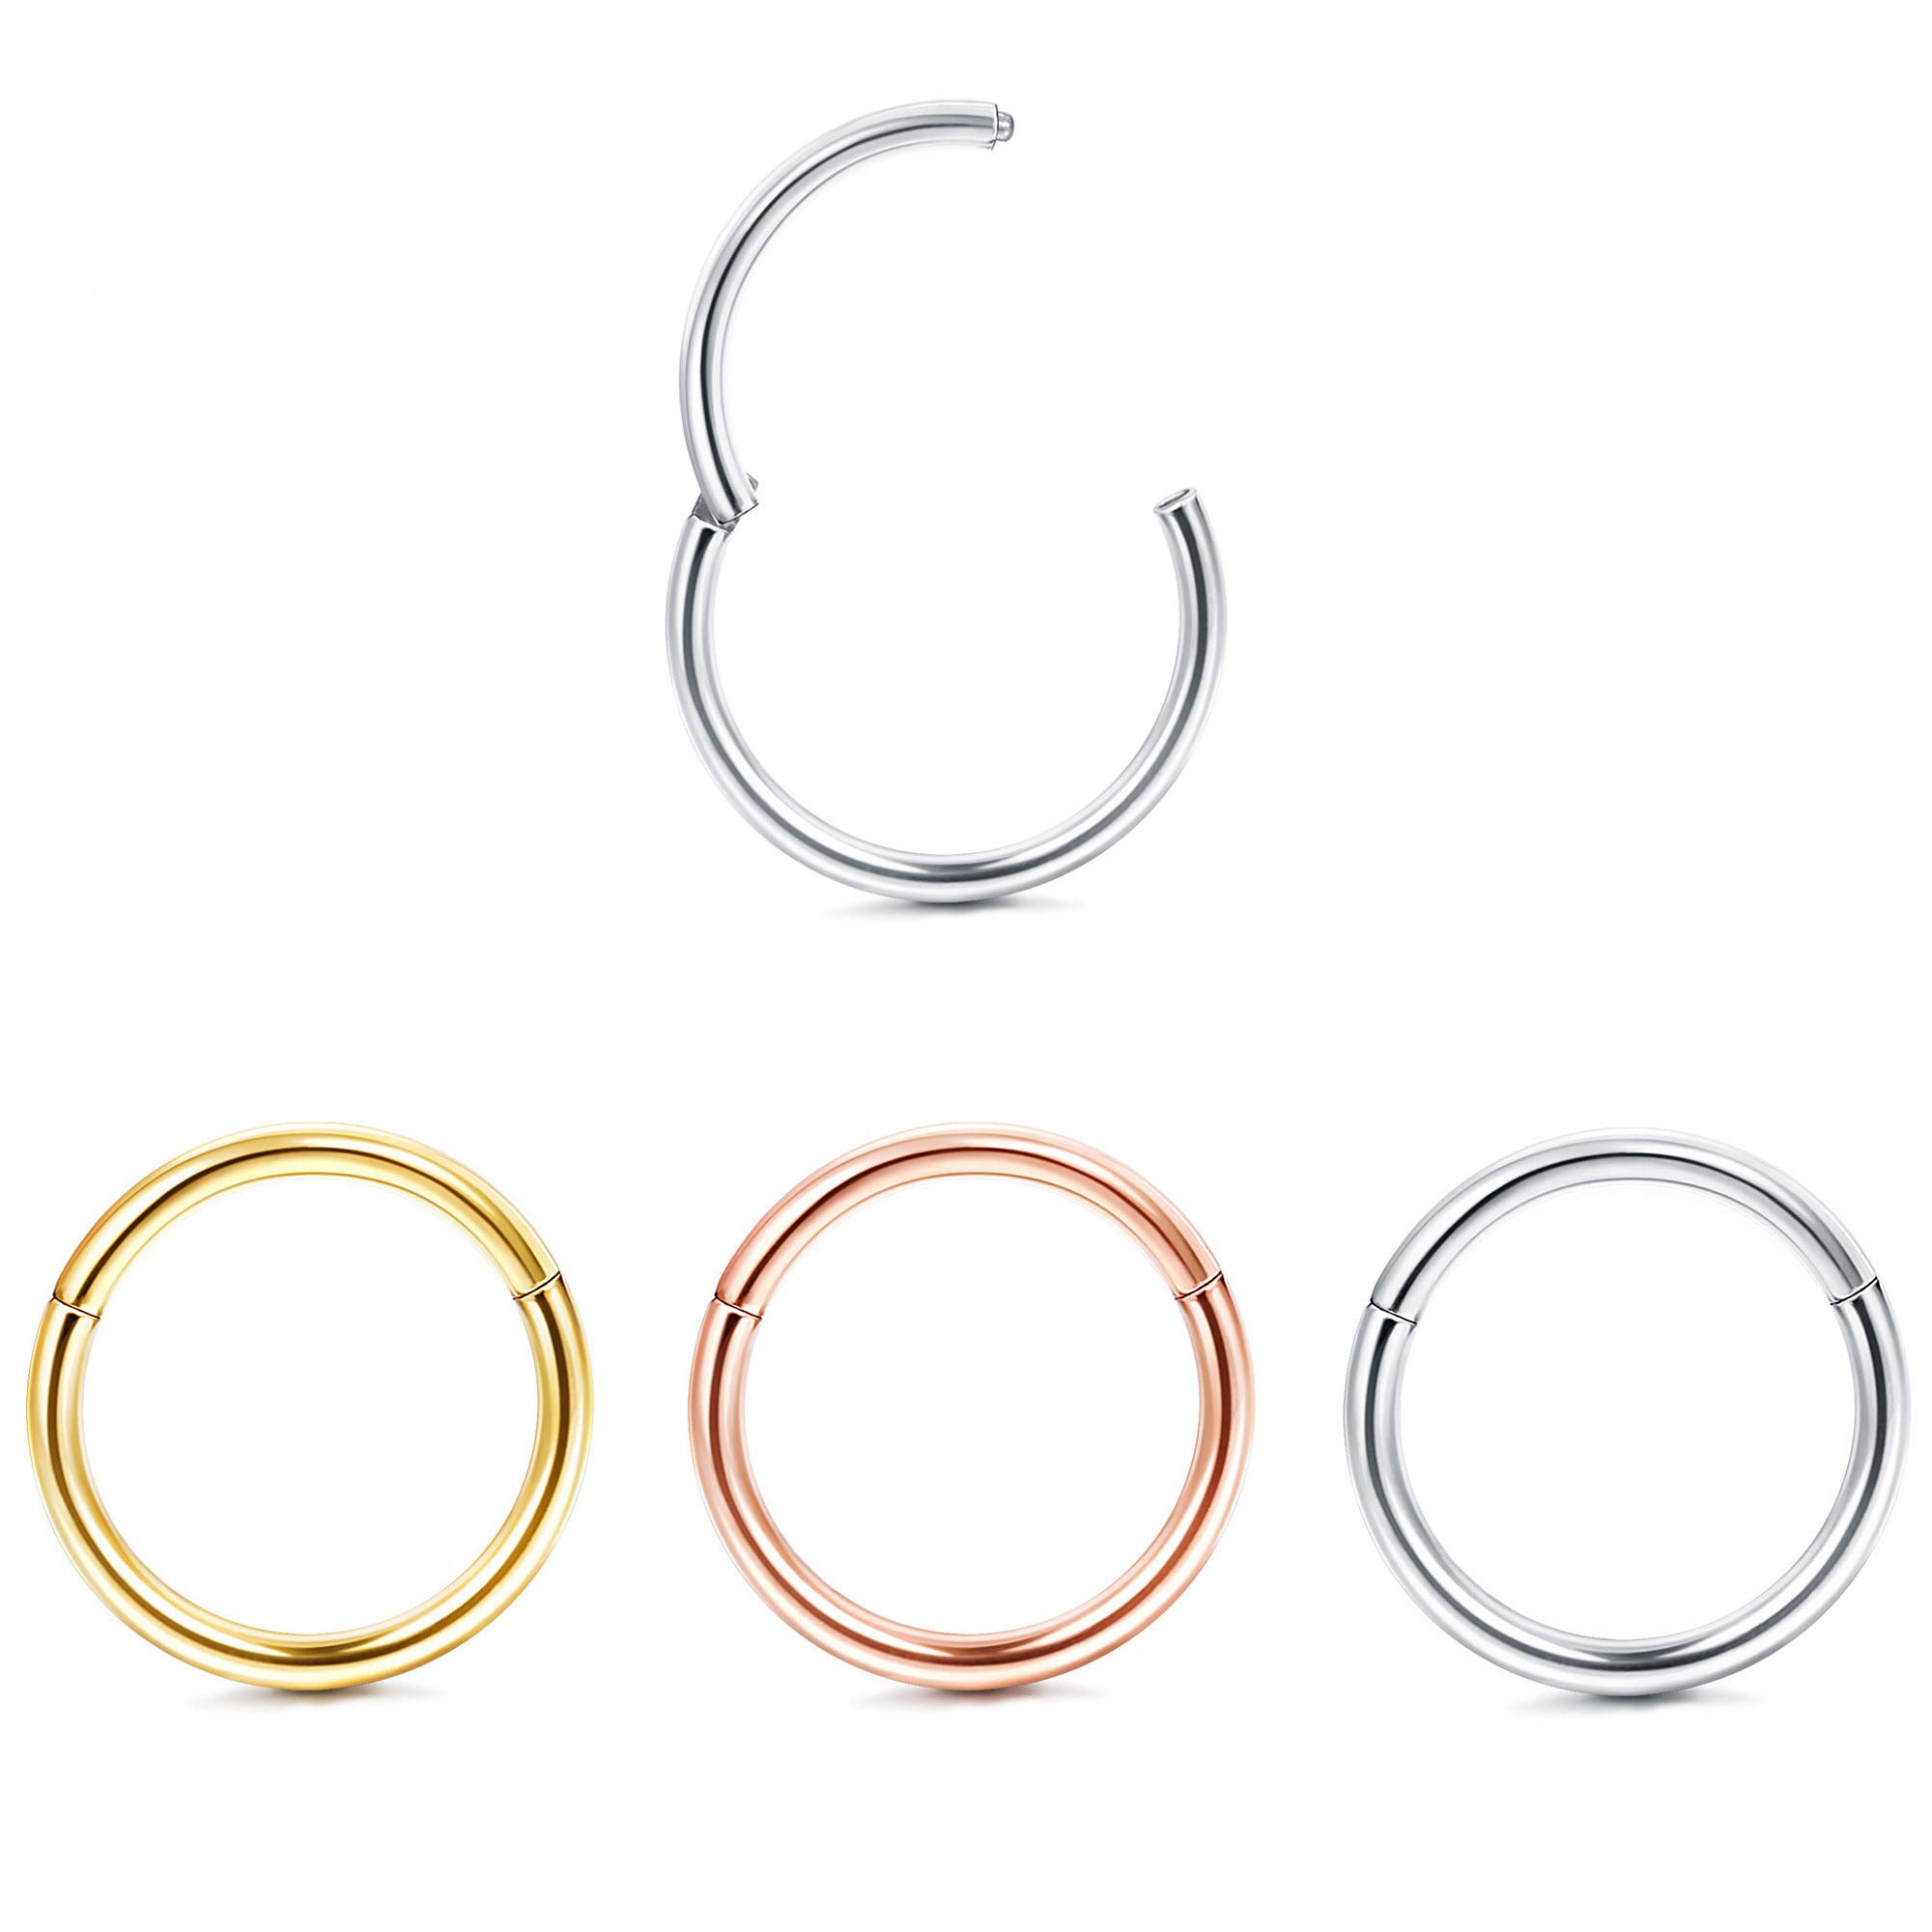 Jstyle 3Pcs 18G Hinged Clicker Nose Rings Hoop Surgical Steel Helix Cartilage Daith Tragus Sleeper Earrings Body Piercing 8MM by Jstyle